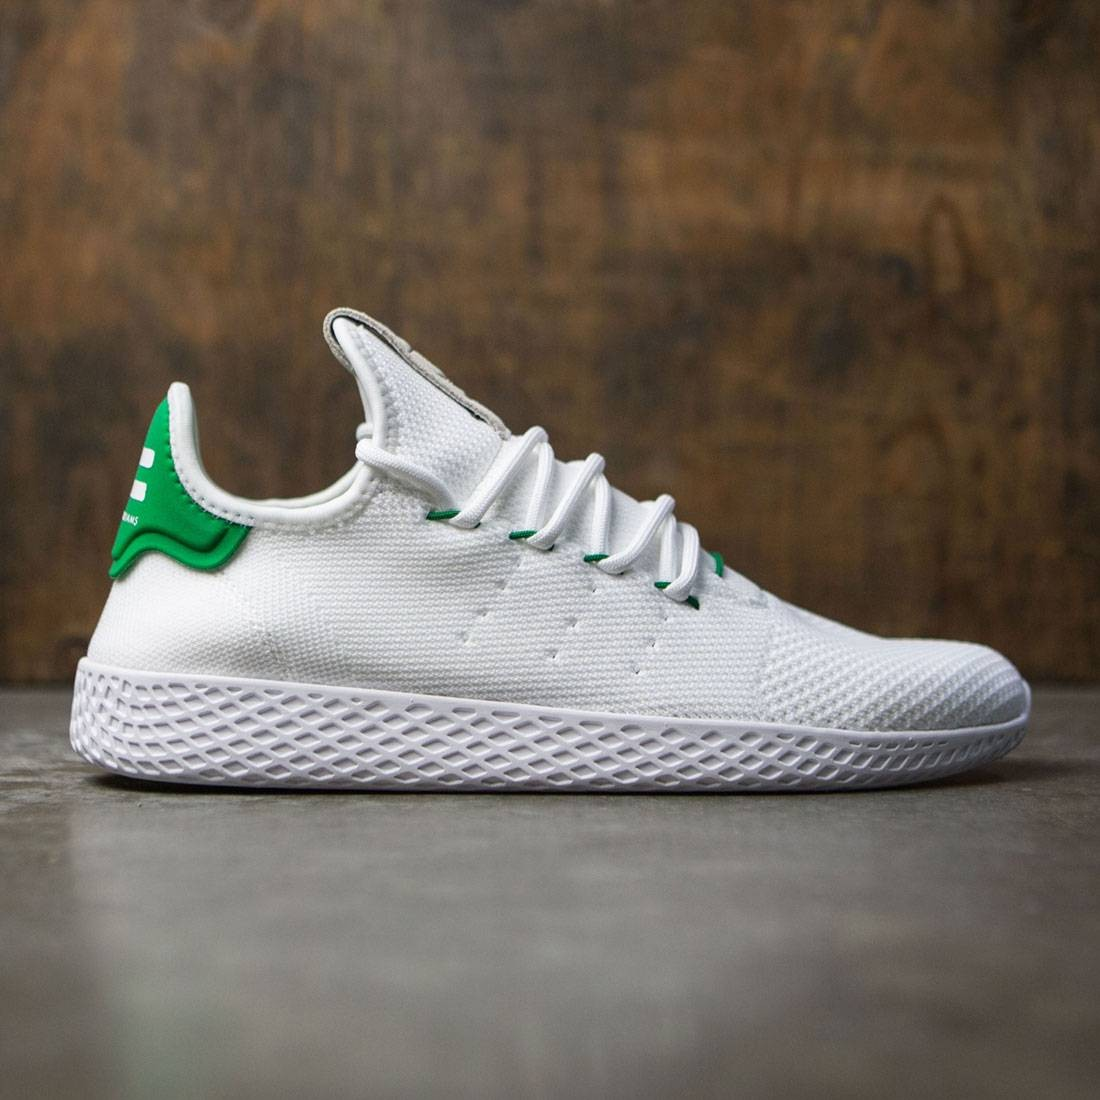 c2317763e7c8 Adidas x Pharrell Williams Men Tennis HU white footwear white green